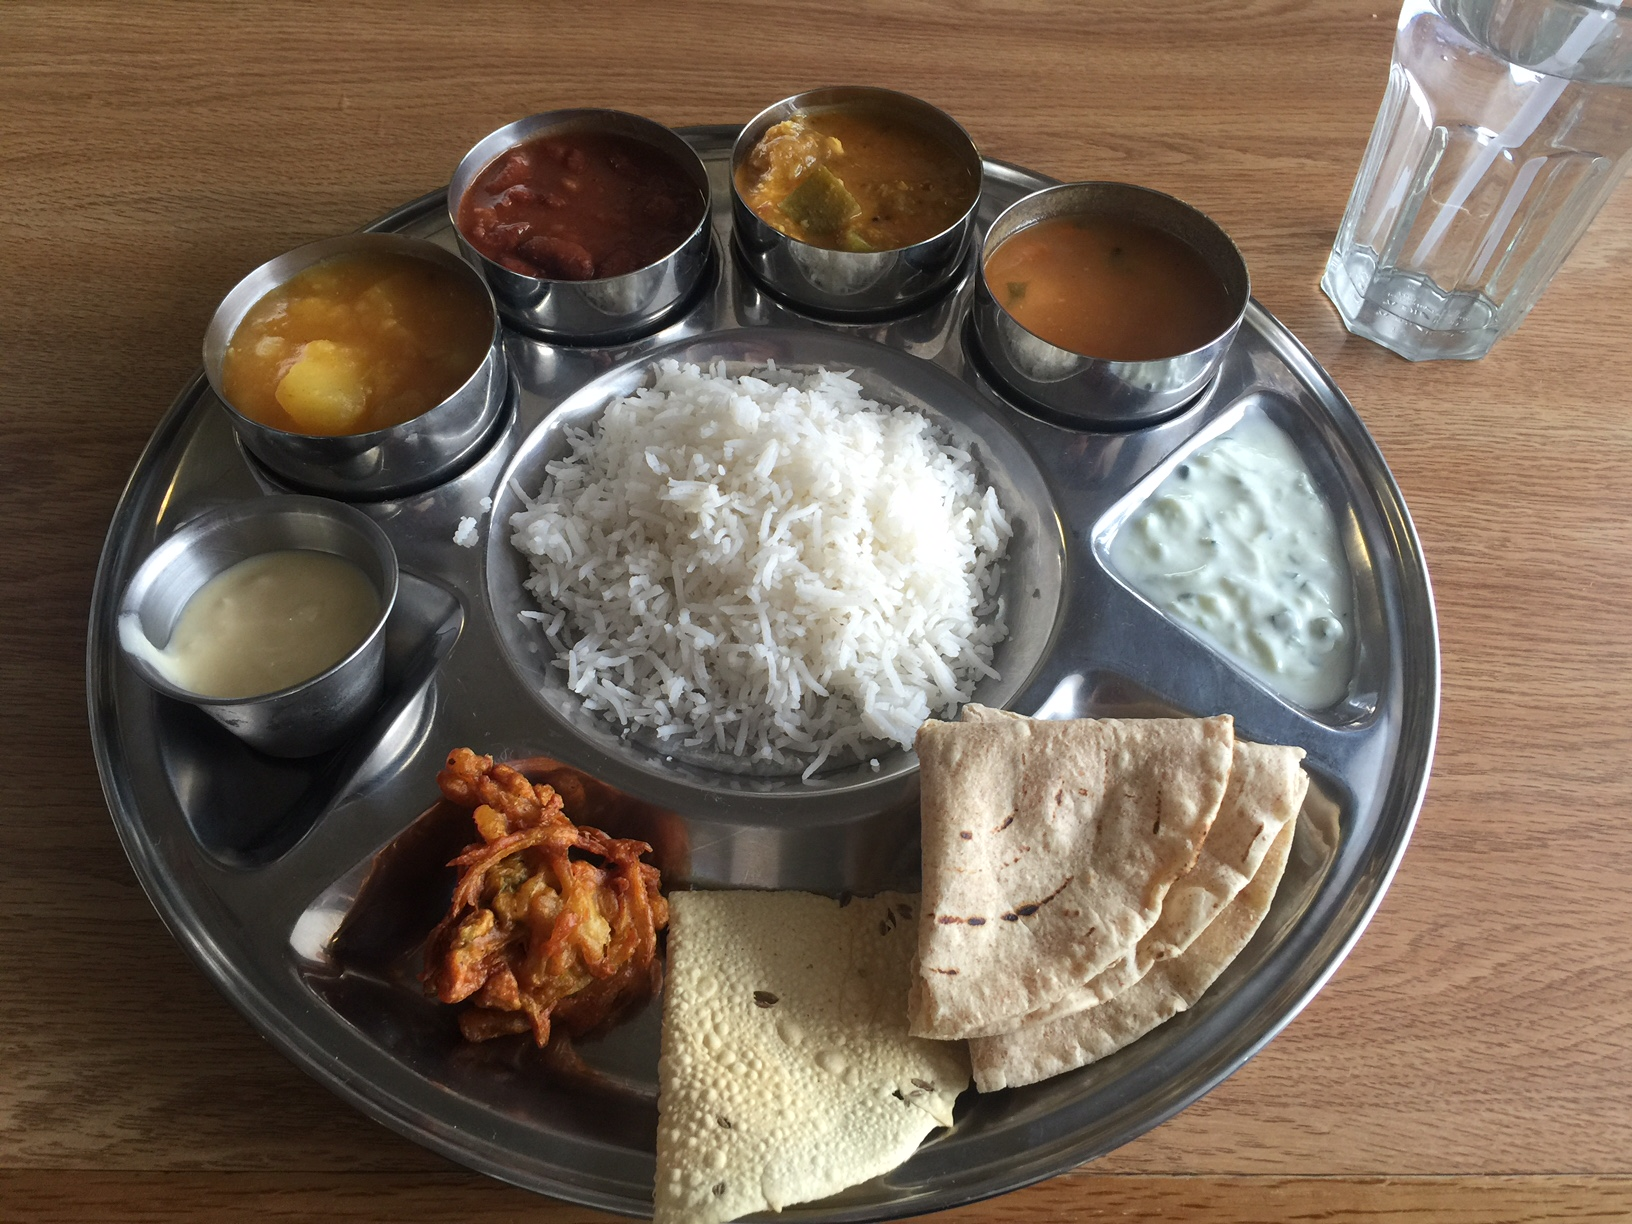 Trying Indian Food For The First Time